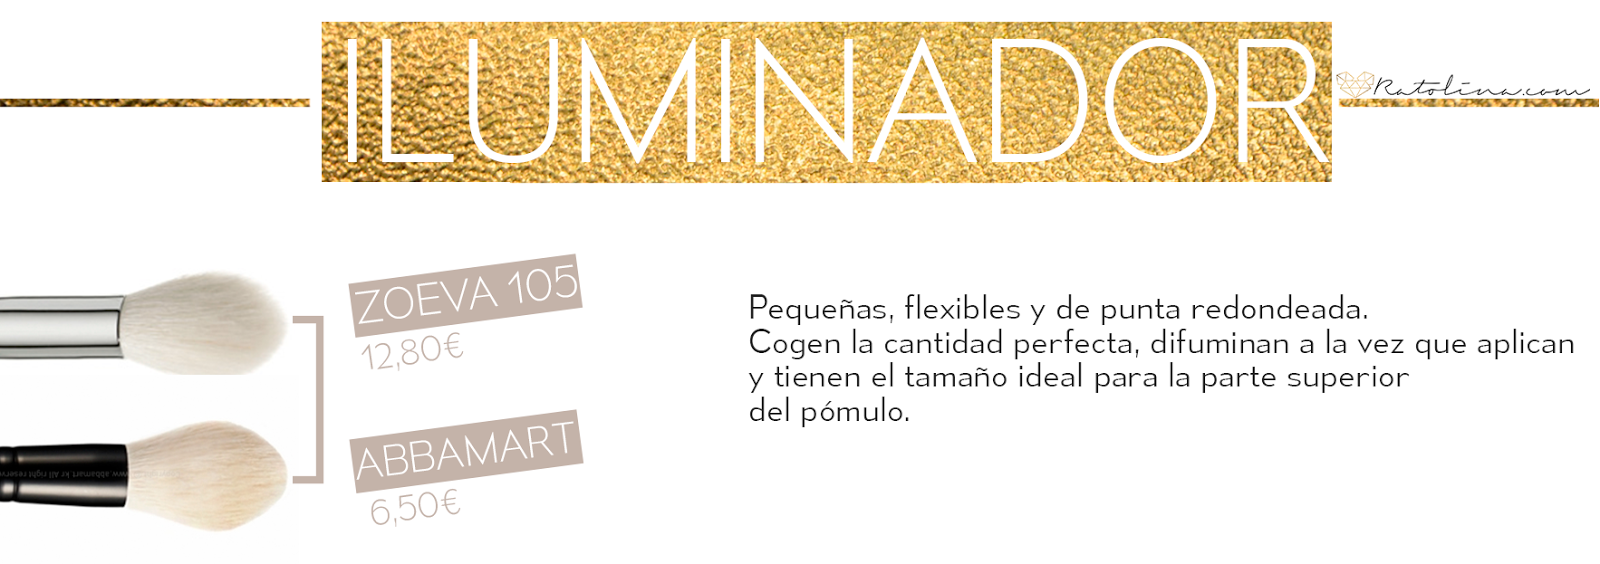 Brochas illuminator low cost